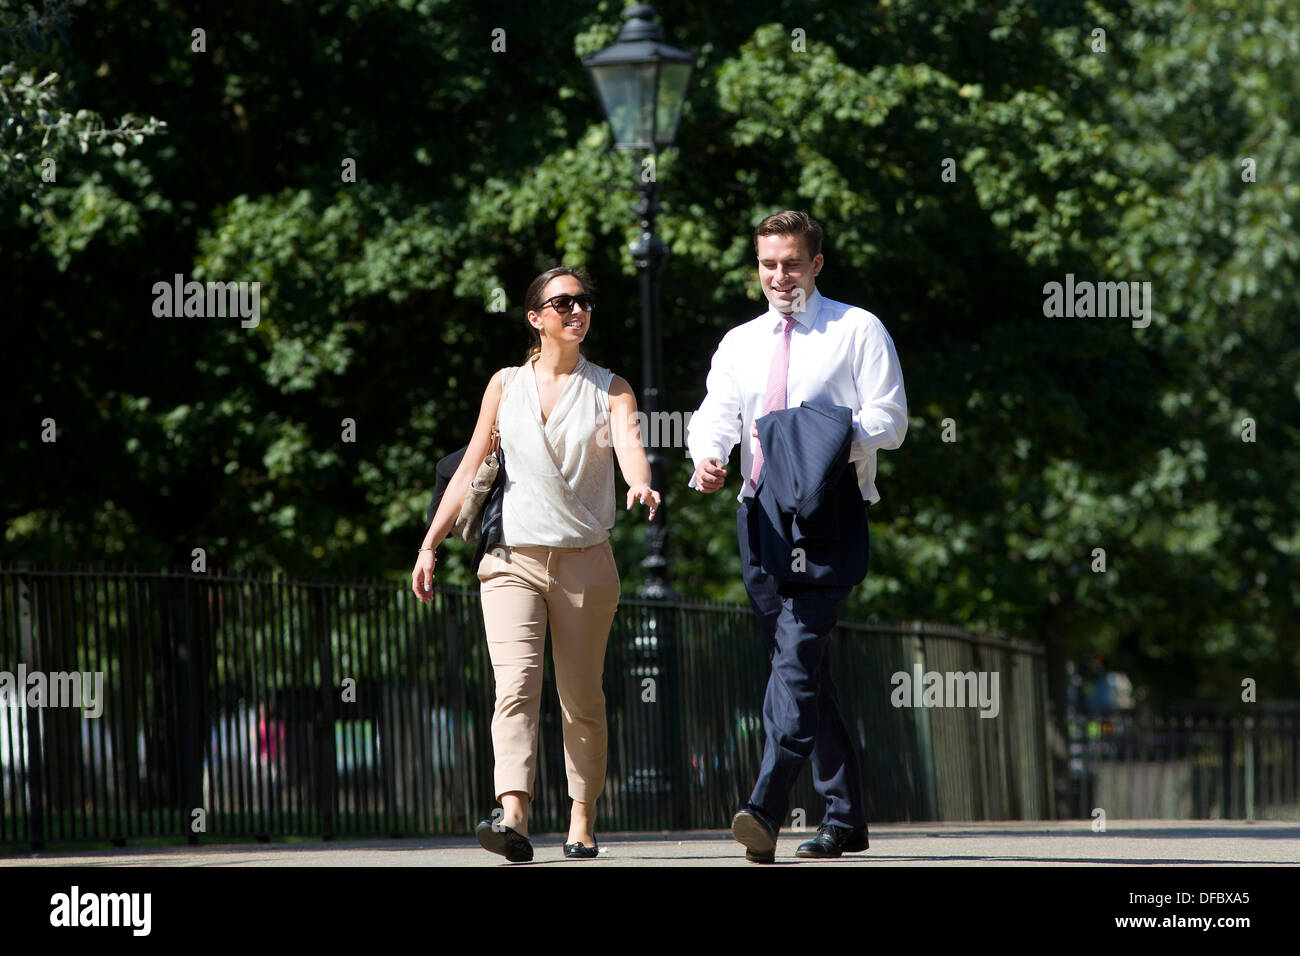 United Kingdom, London : Business people take a walk through Hyde Park to enjoy the hot weather in London on August 29, 2013. - Stock Image